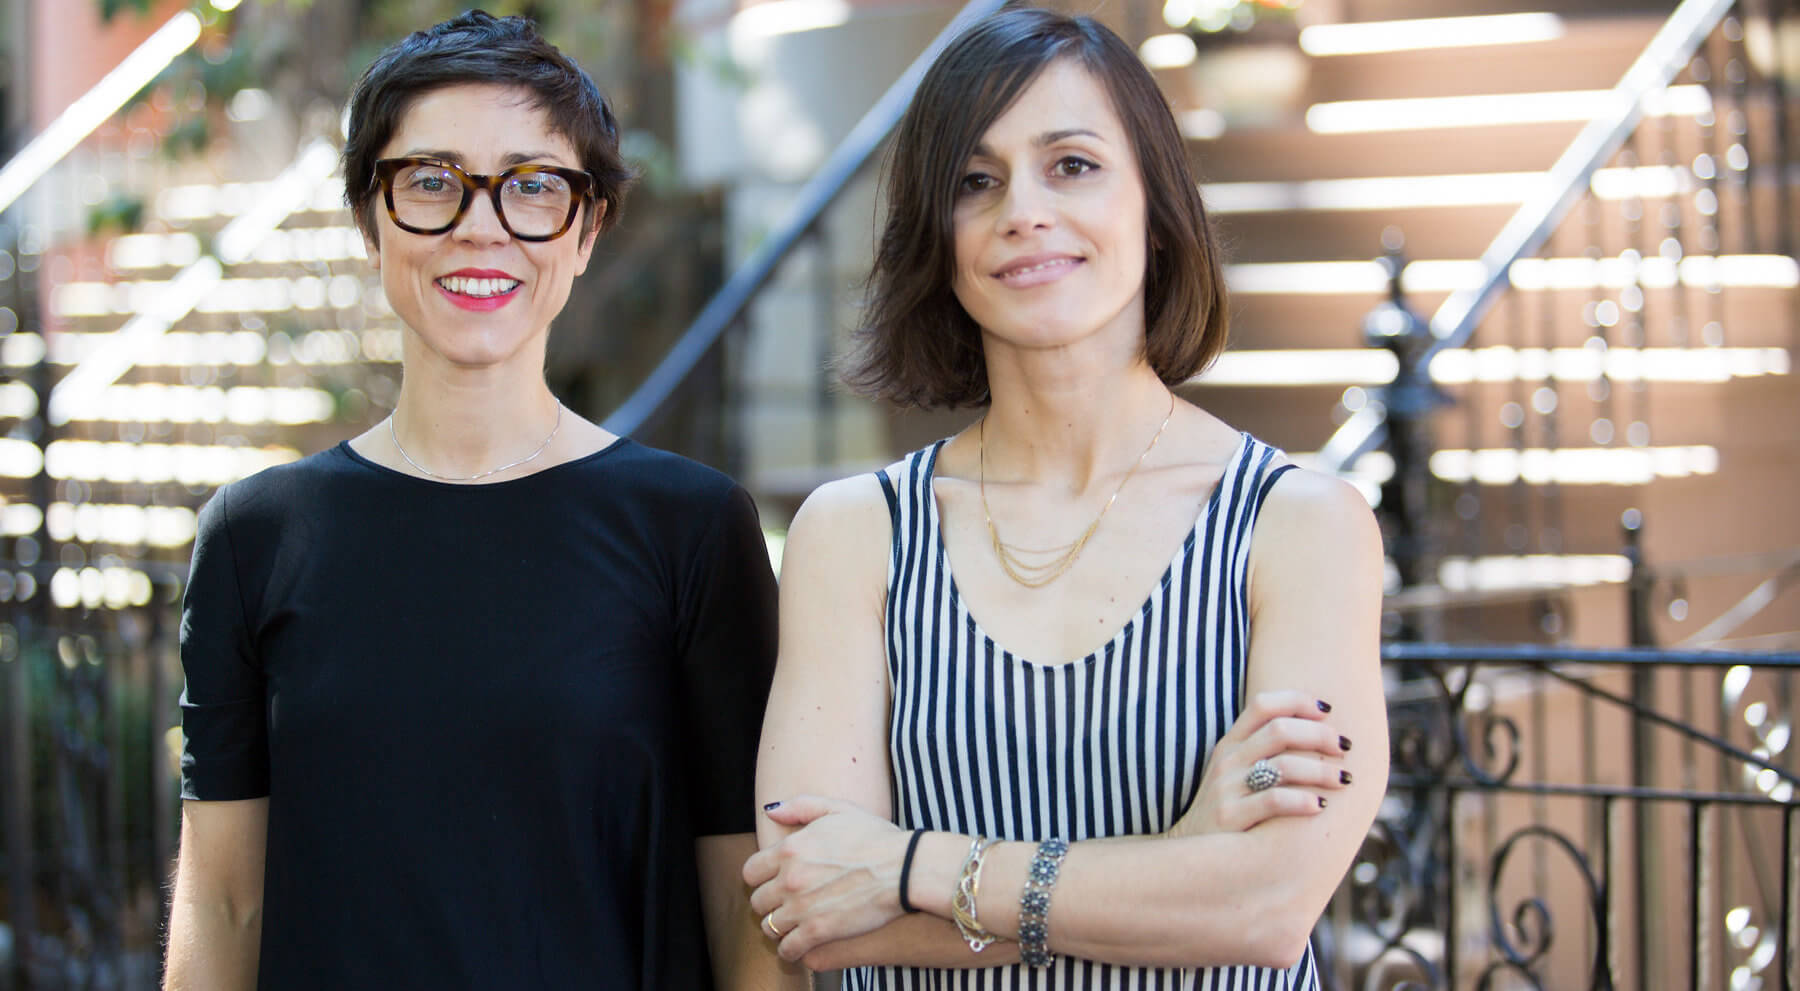 Let's talk to Sónia & Cláudia Rocha, sisters & founders of Wolf & Rita